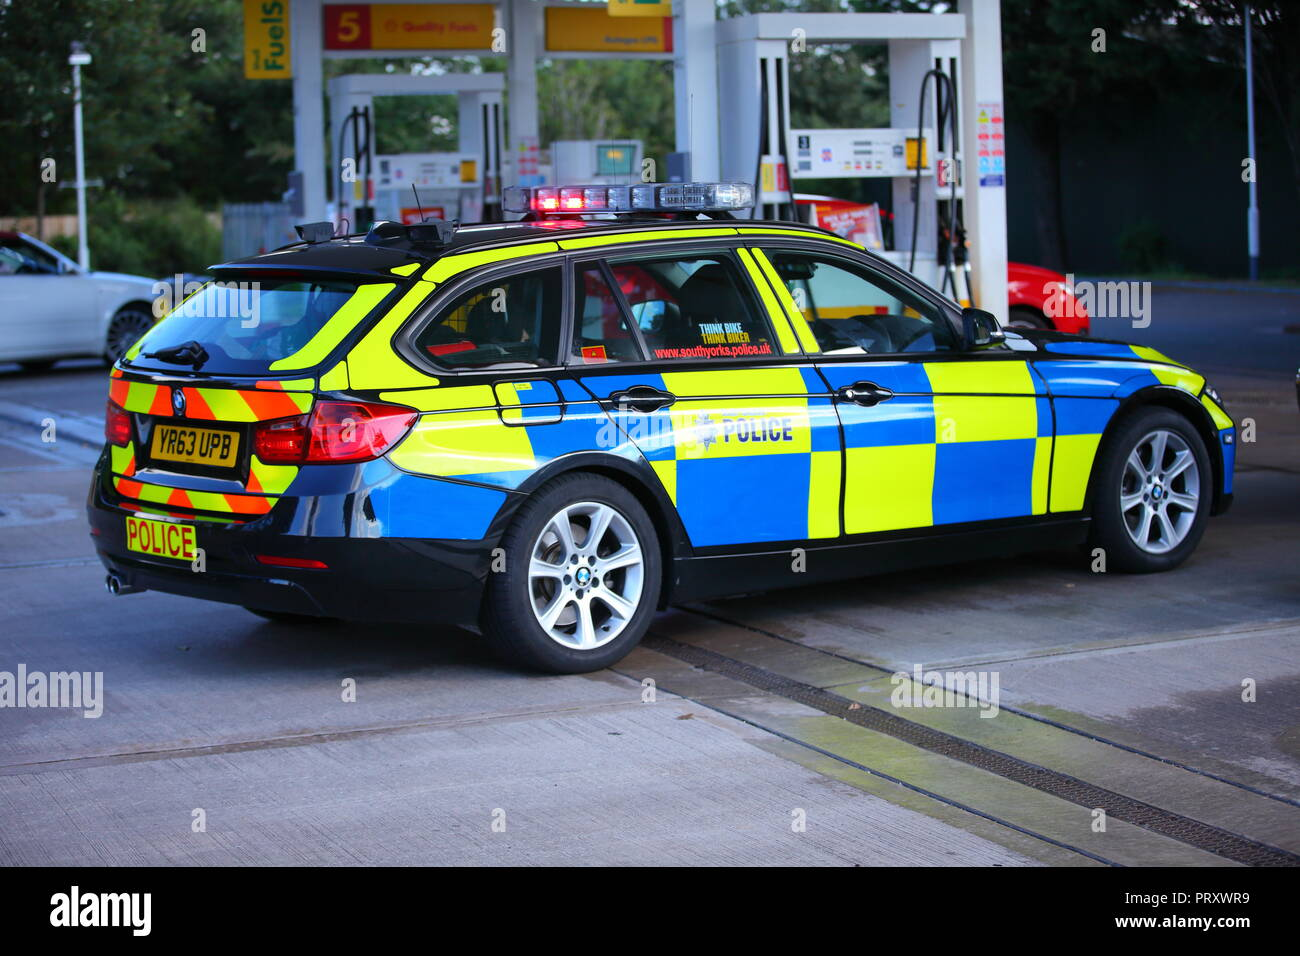 A black battenberg police car belonging to South Yorkshire Police Force which is a different colour to rest of their fleet of vehicles. Stock Photo